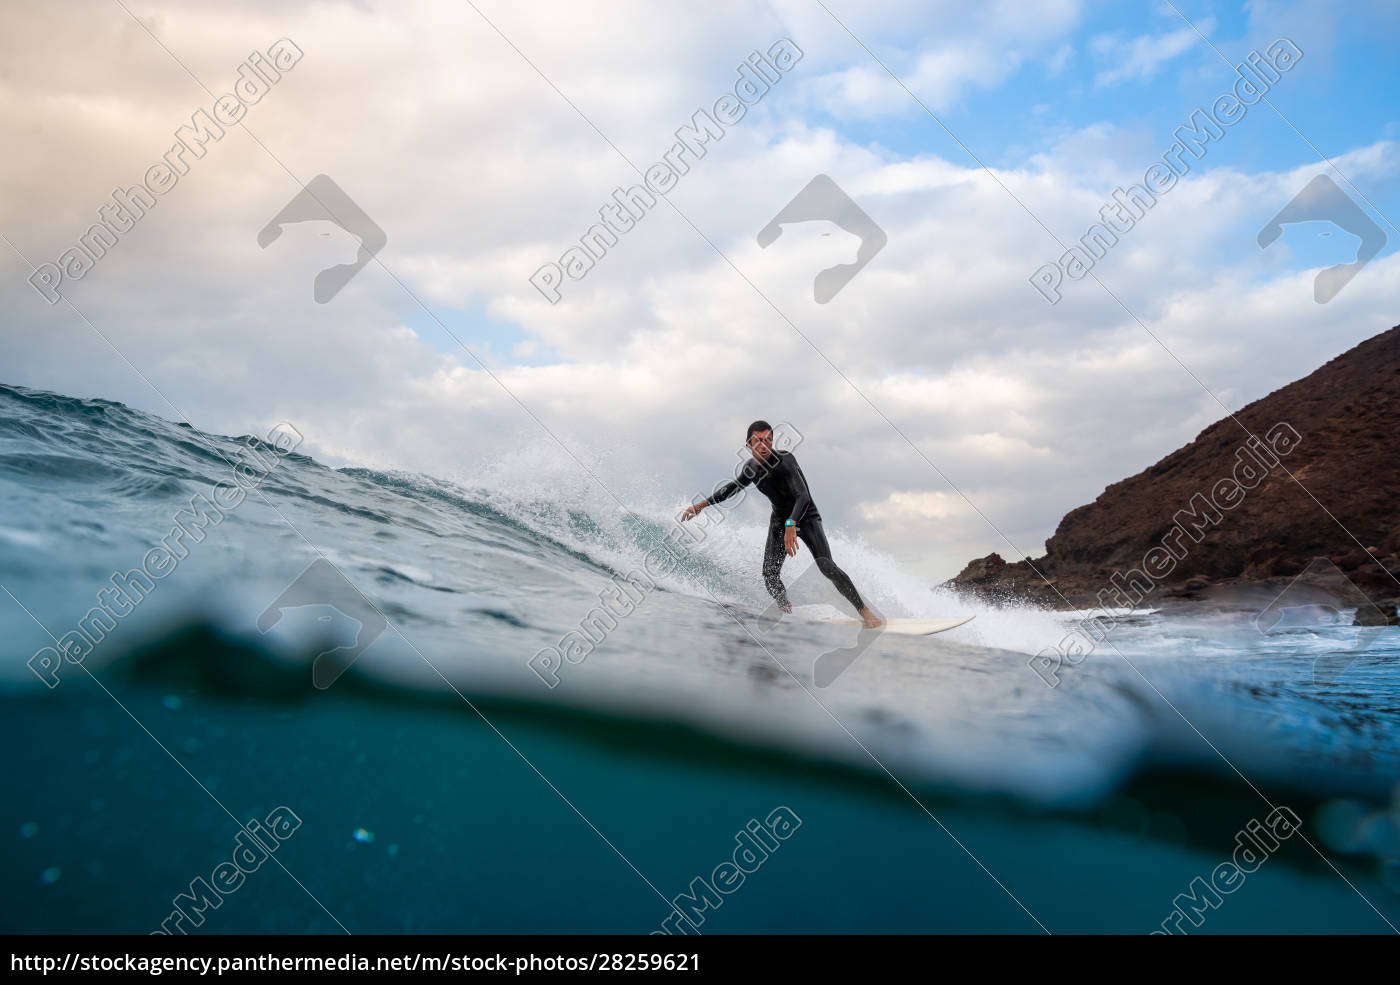 surfer, riding, waves, on, the, island - 28259621